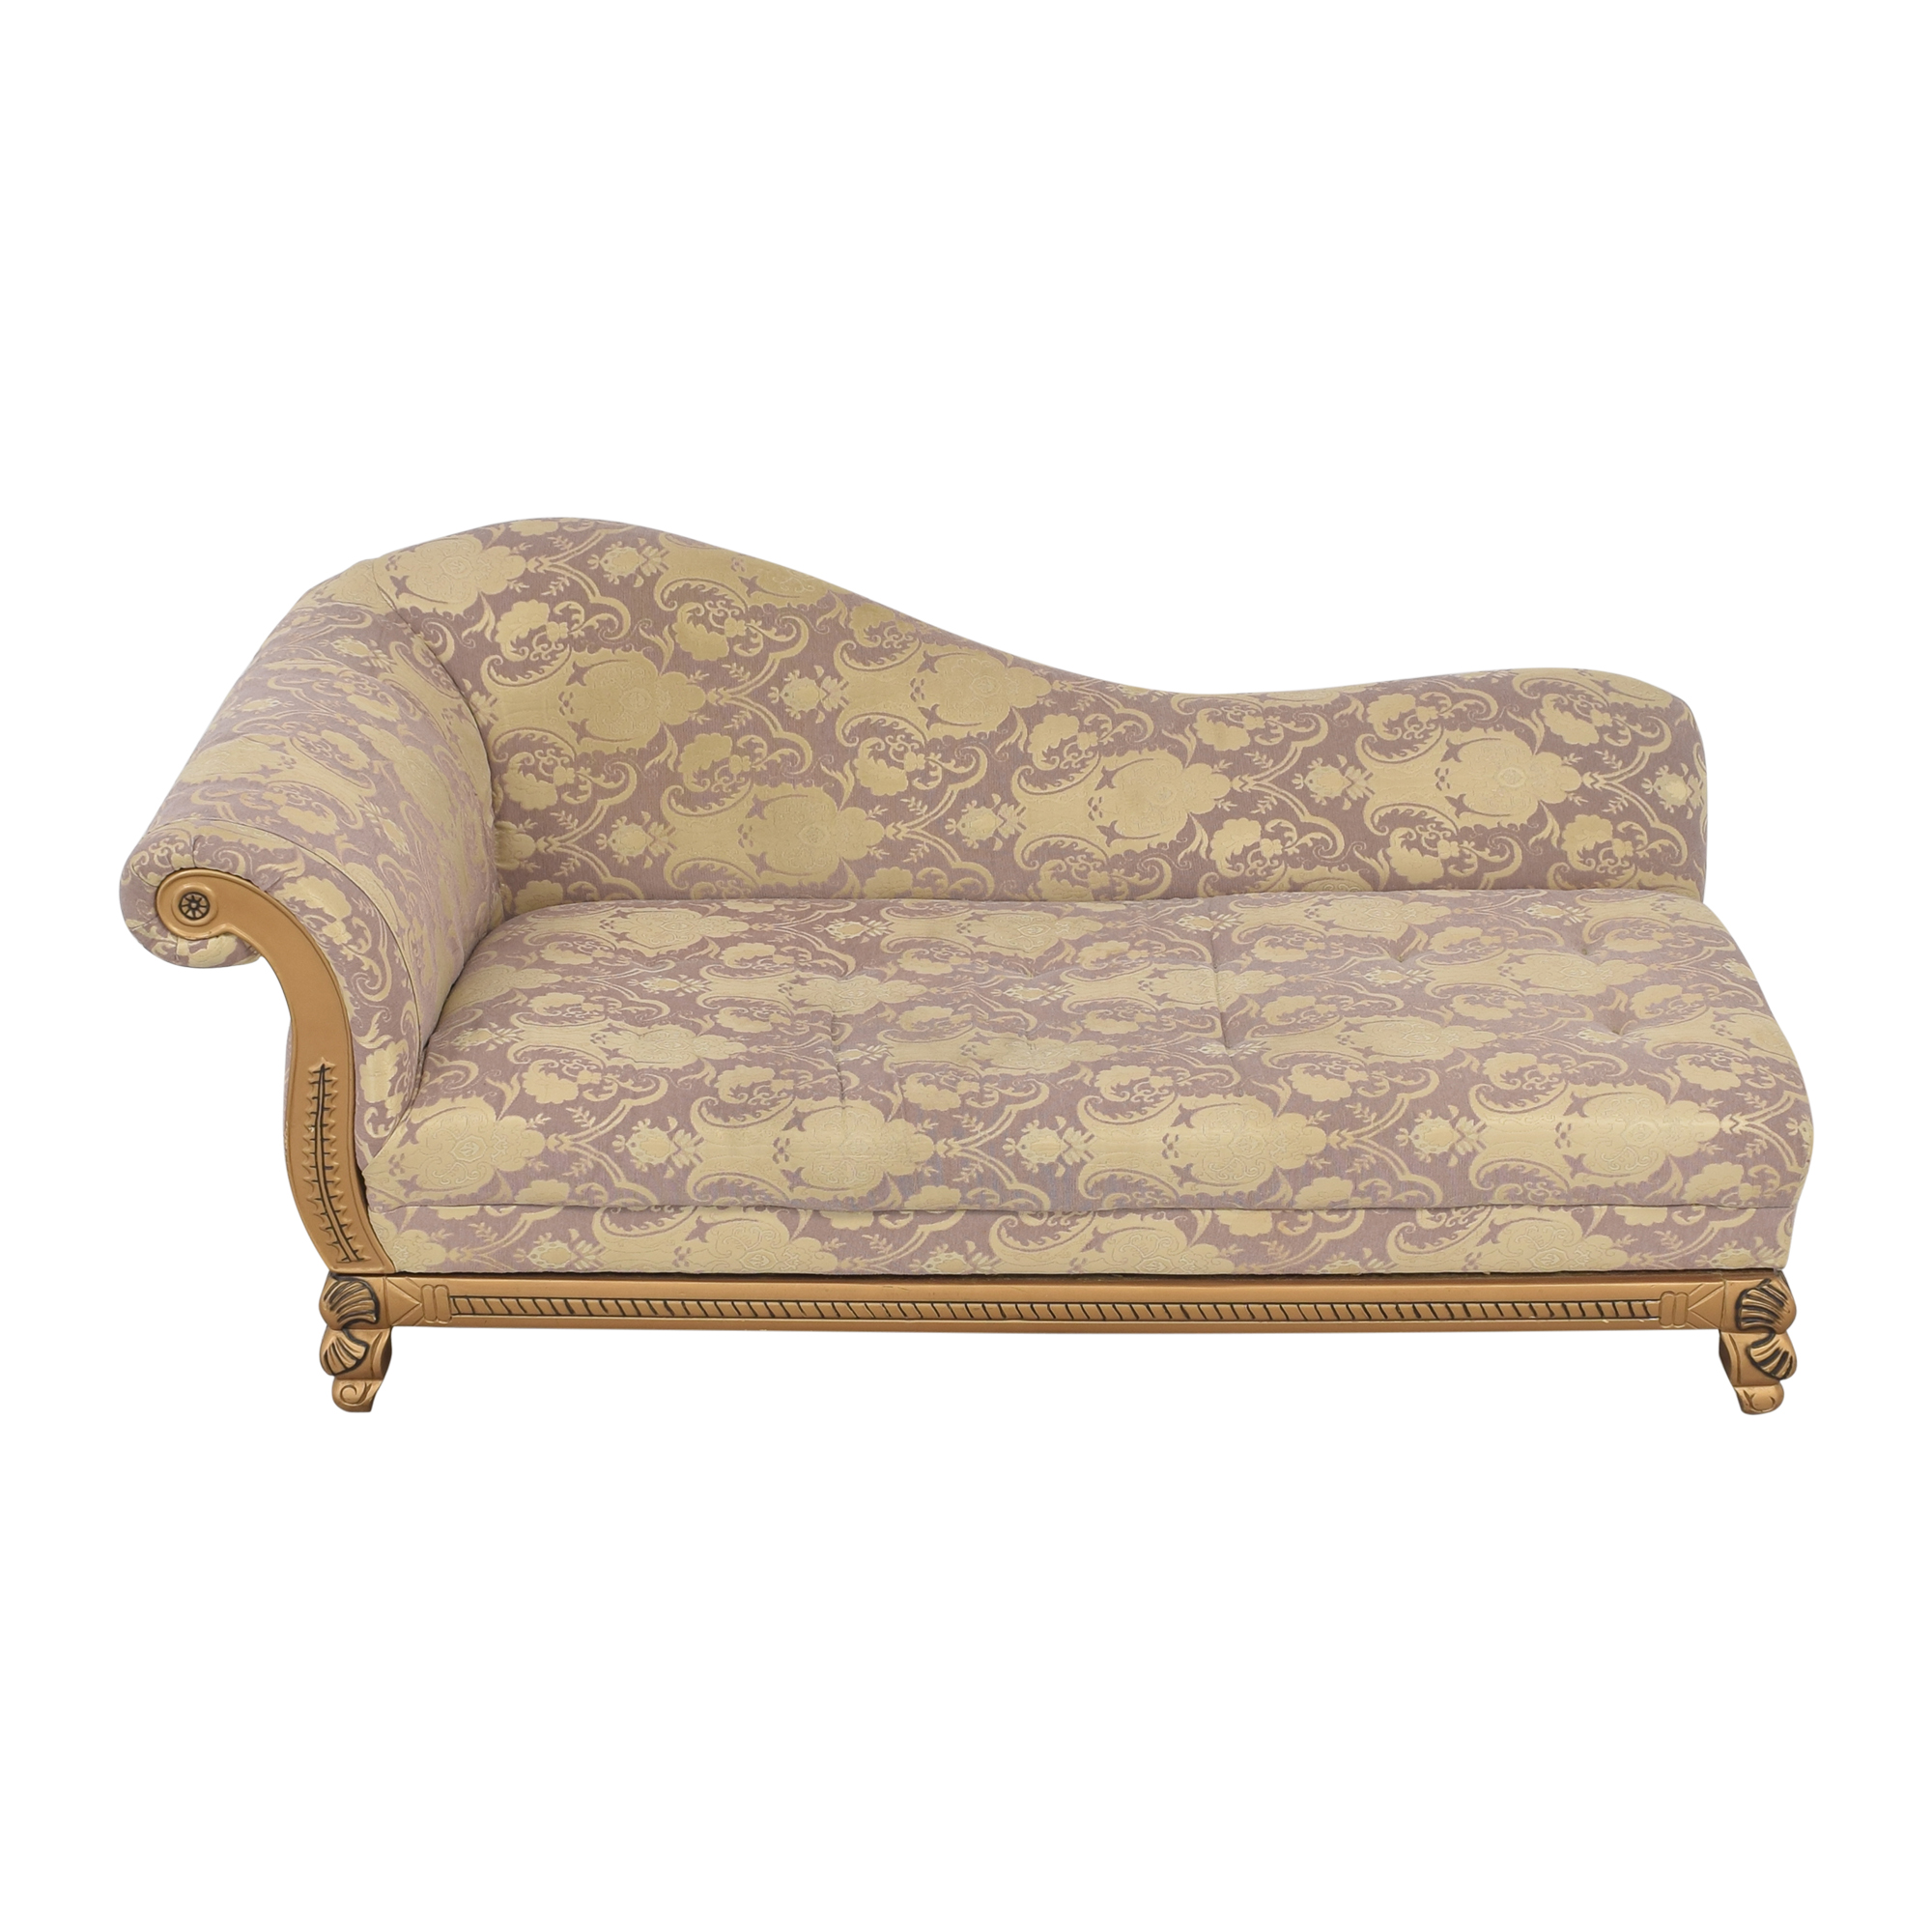 Upholstered Chaise Lounge sale